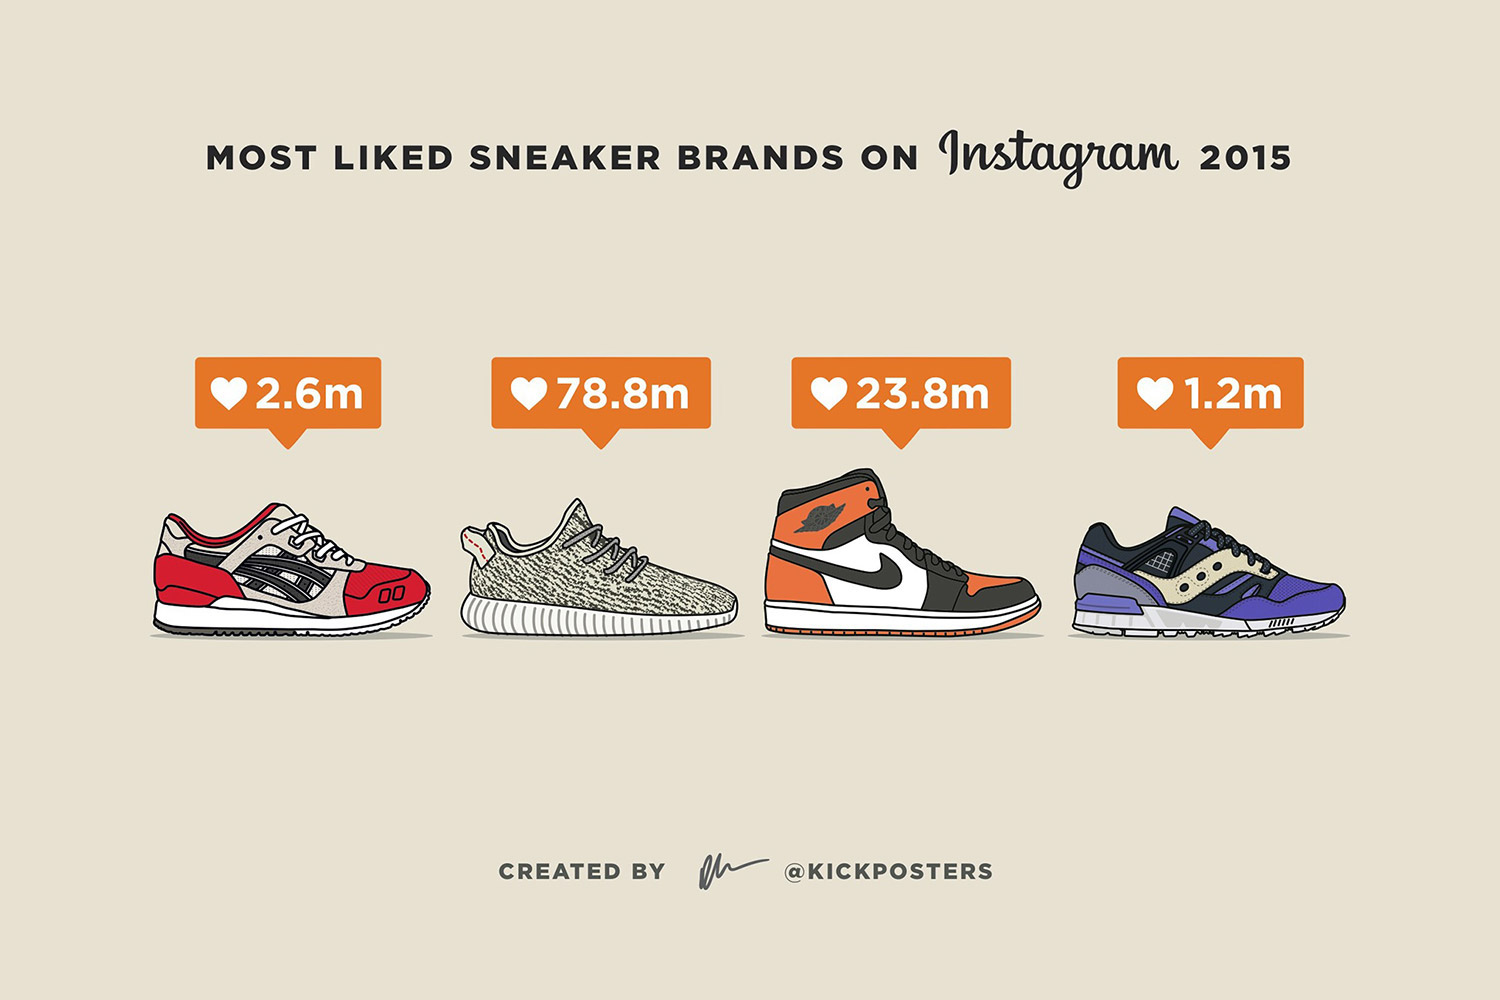 most-liked-sneaker-brands-instagram-2015-01.jpg